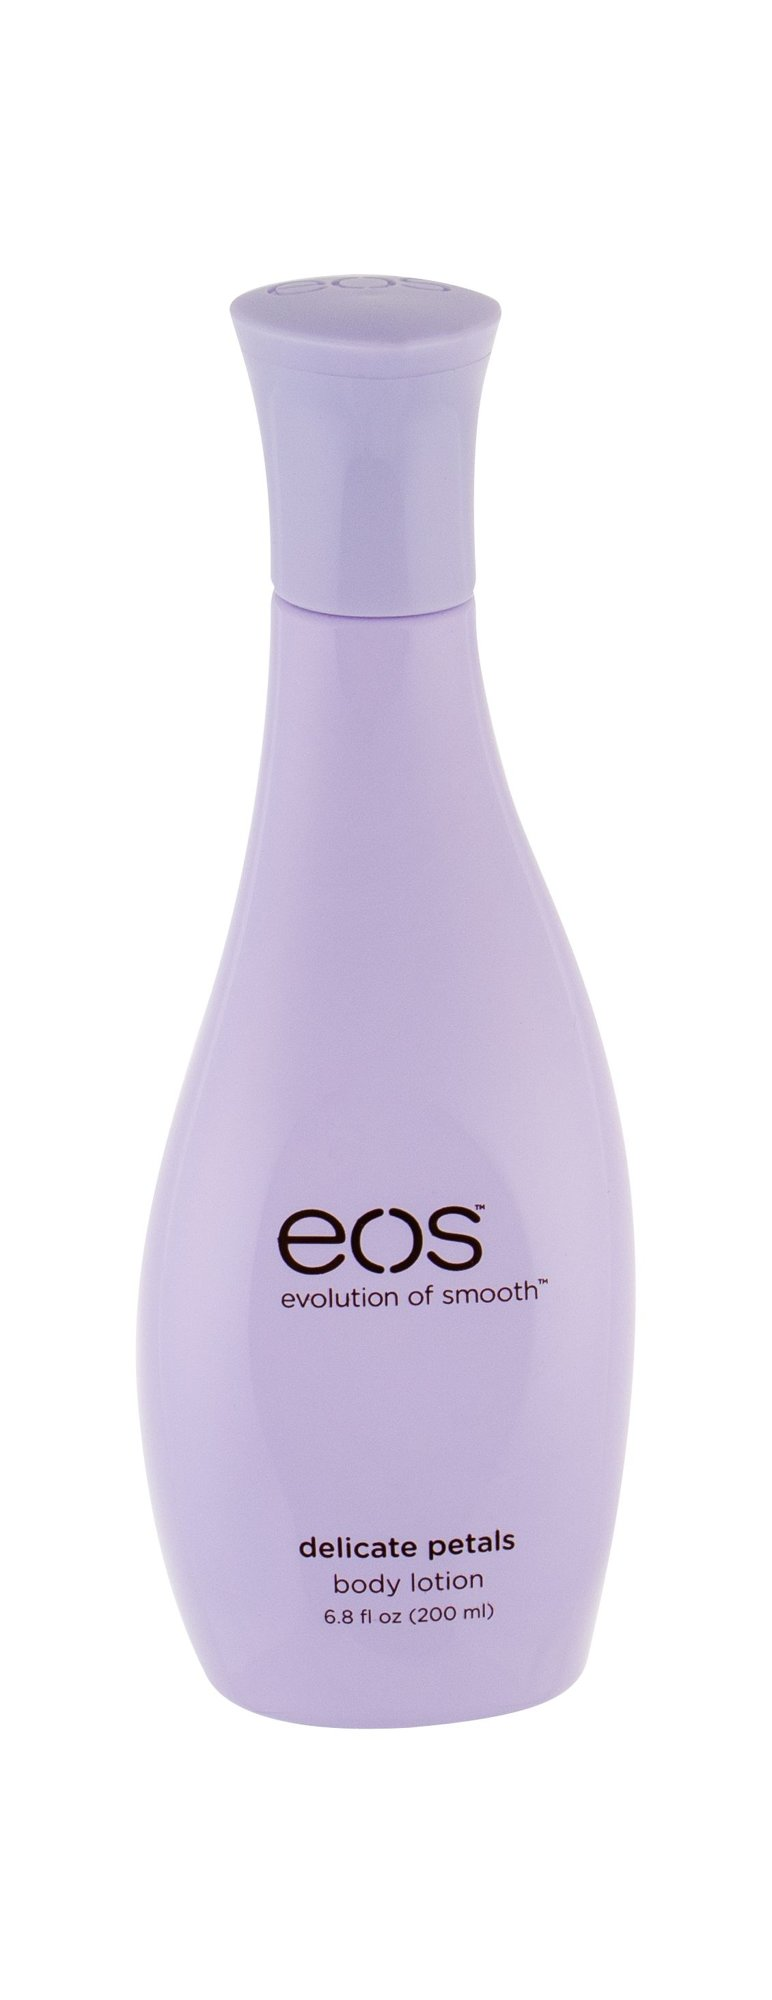 EOS Body Lotion Body Lotion 200ml Delicate Petals